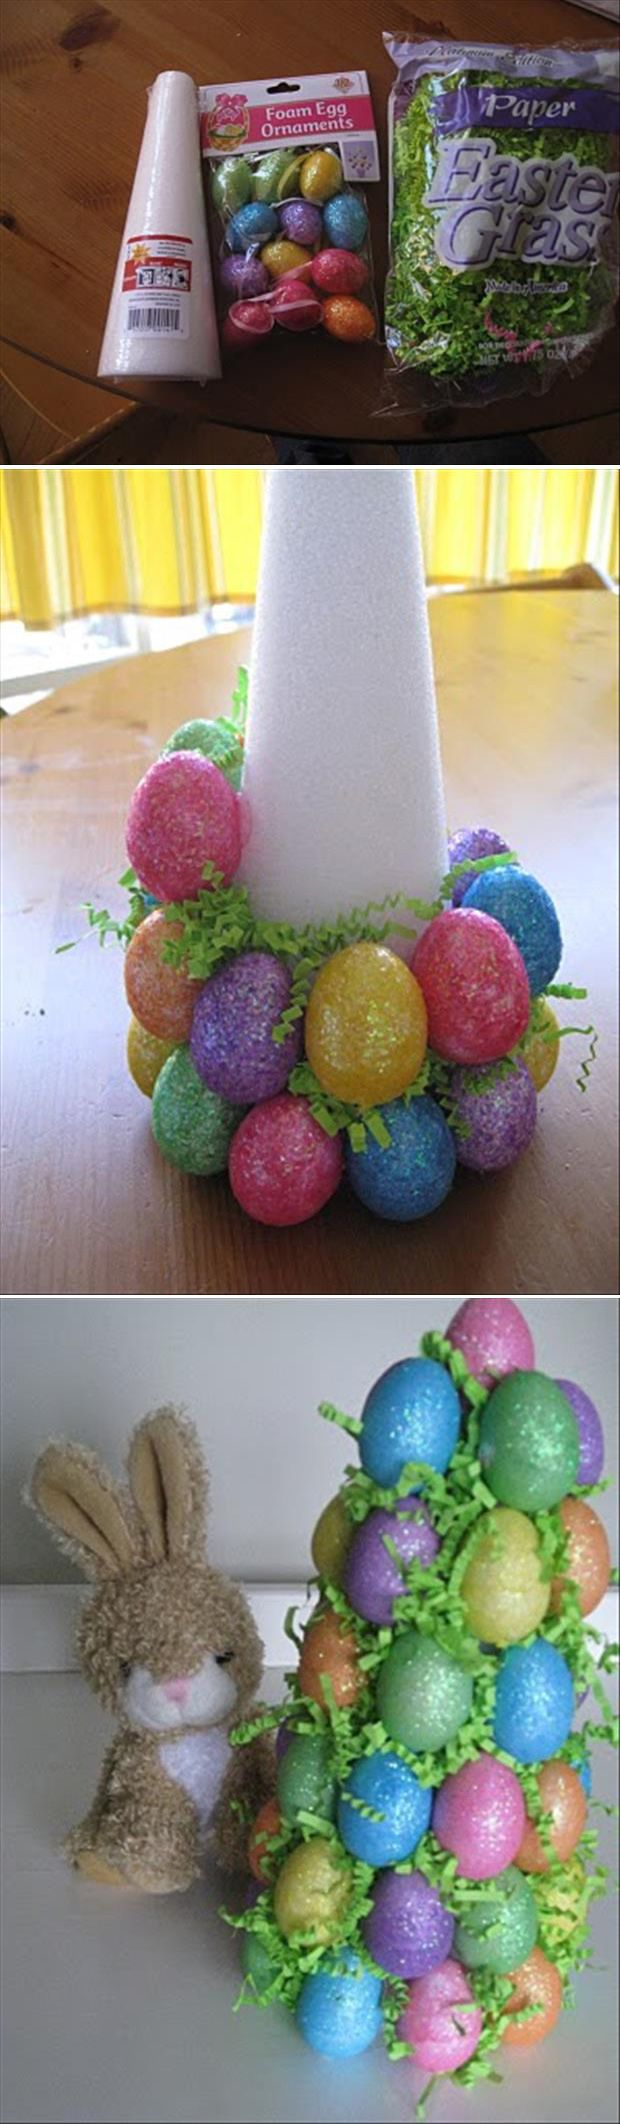 Fun Easter Craft Ideas – 32 Pics #pin_it #easter #diy #sustentabilidade @mundodascasas